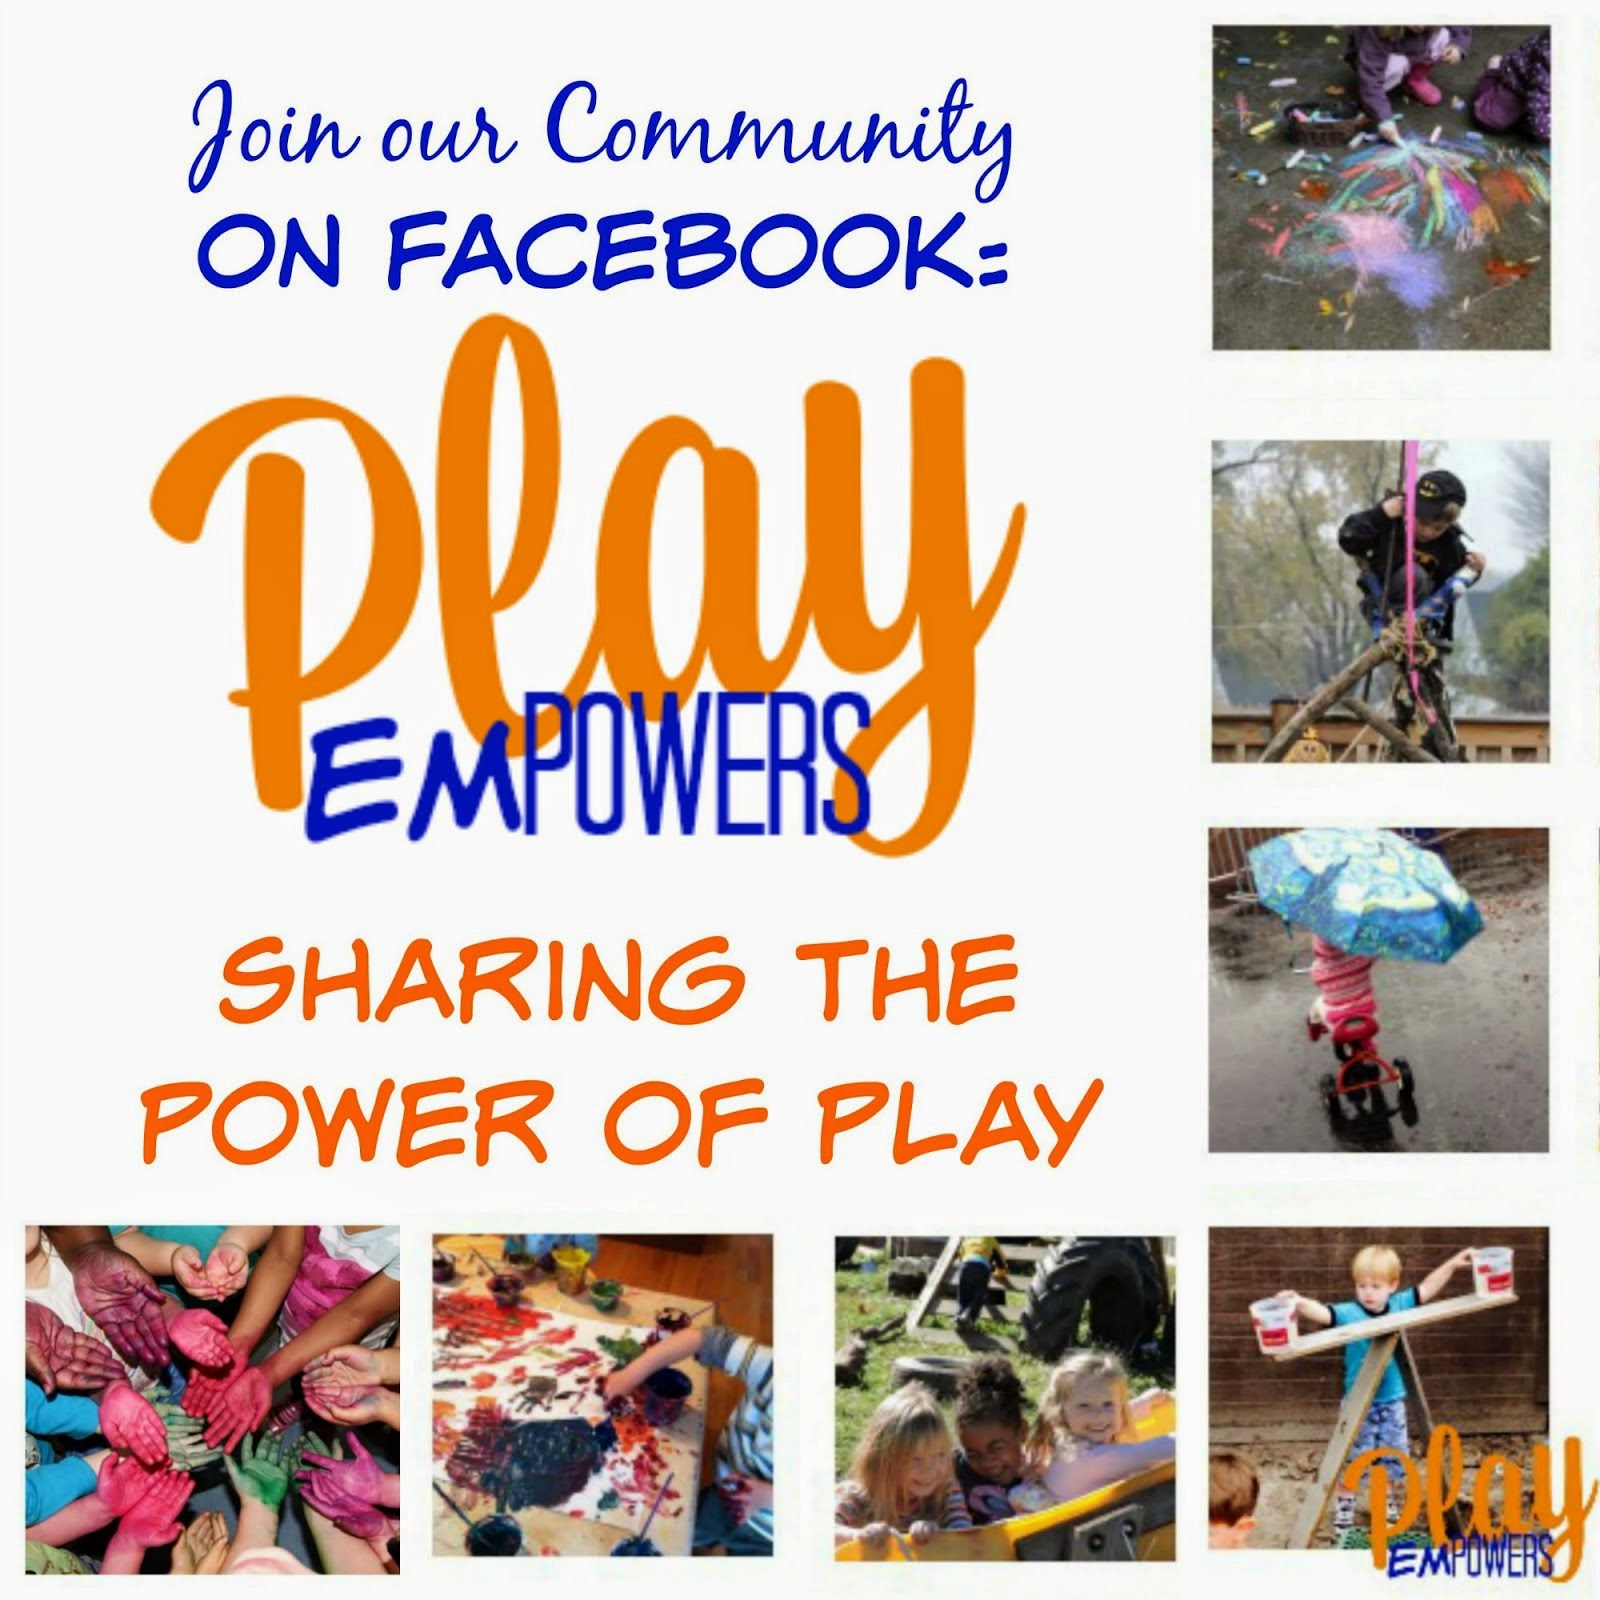 Join Our Community on Facebook!